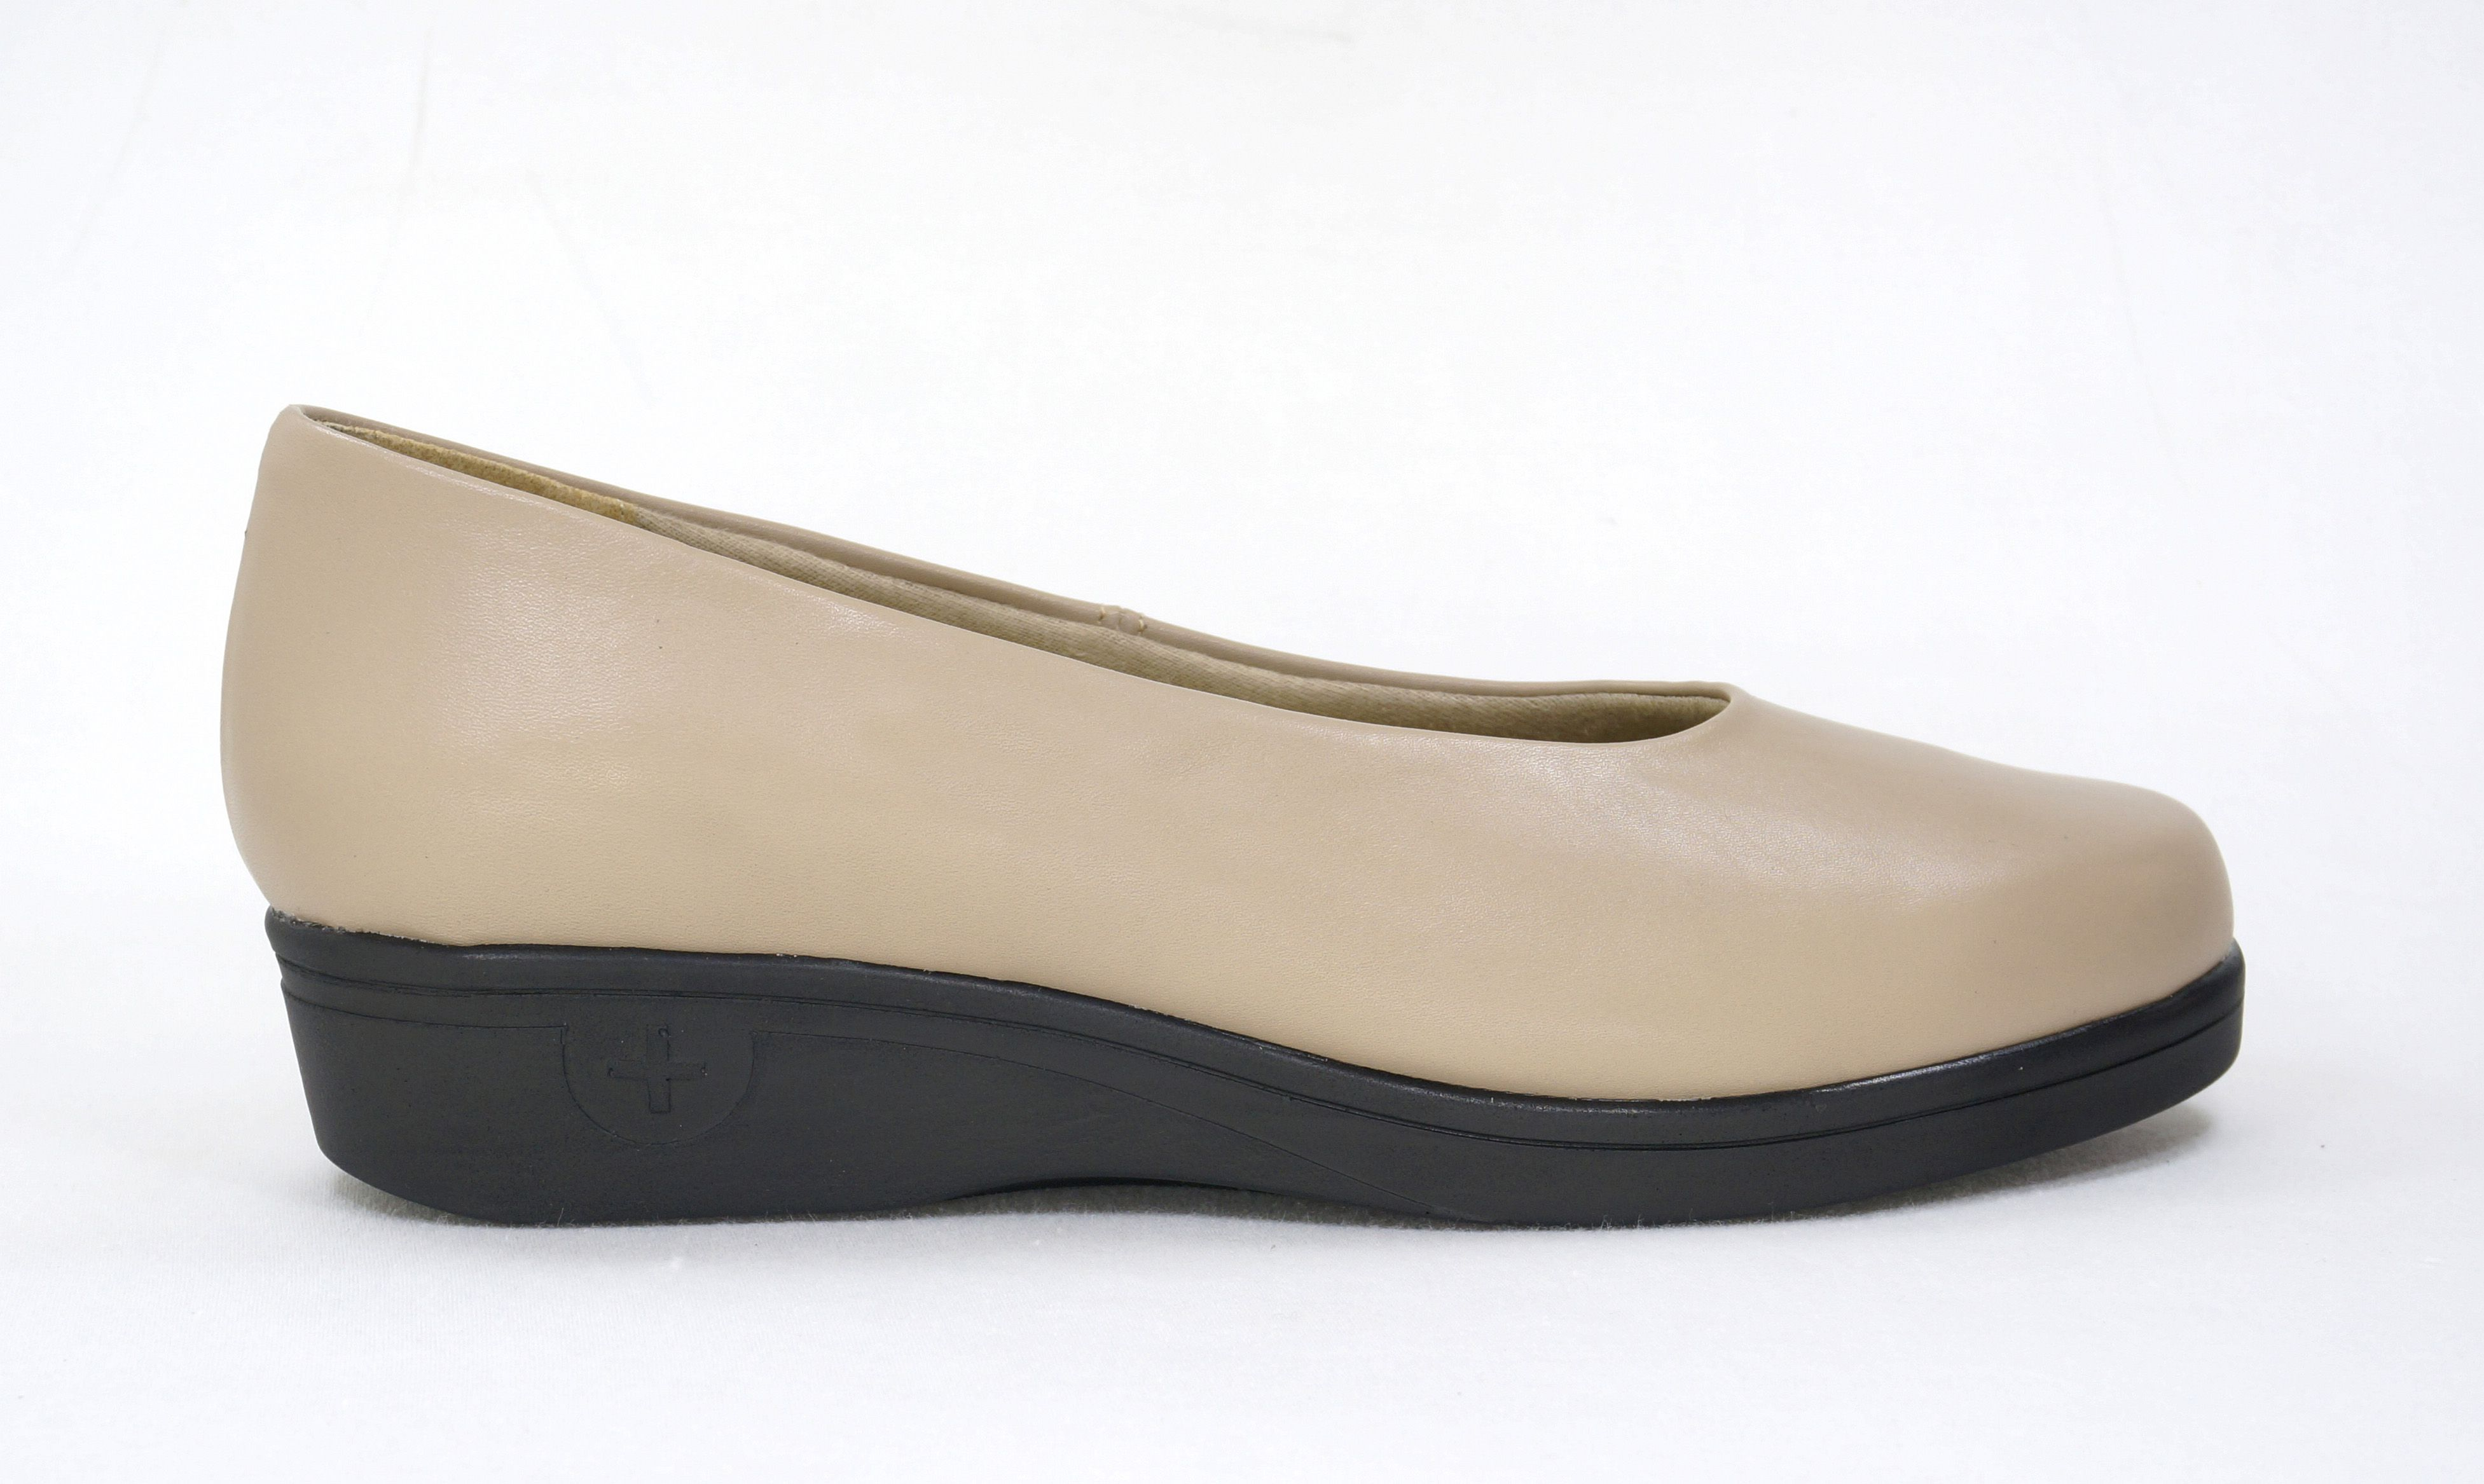 Pin On Ladies Heels And Wedges Handcrafted Genuine Leather Shoes